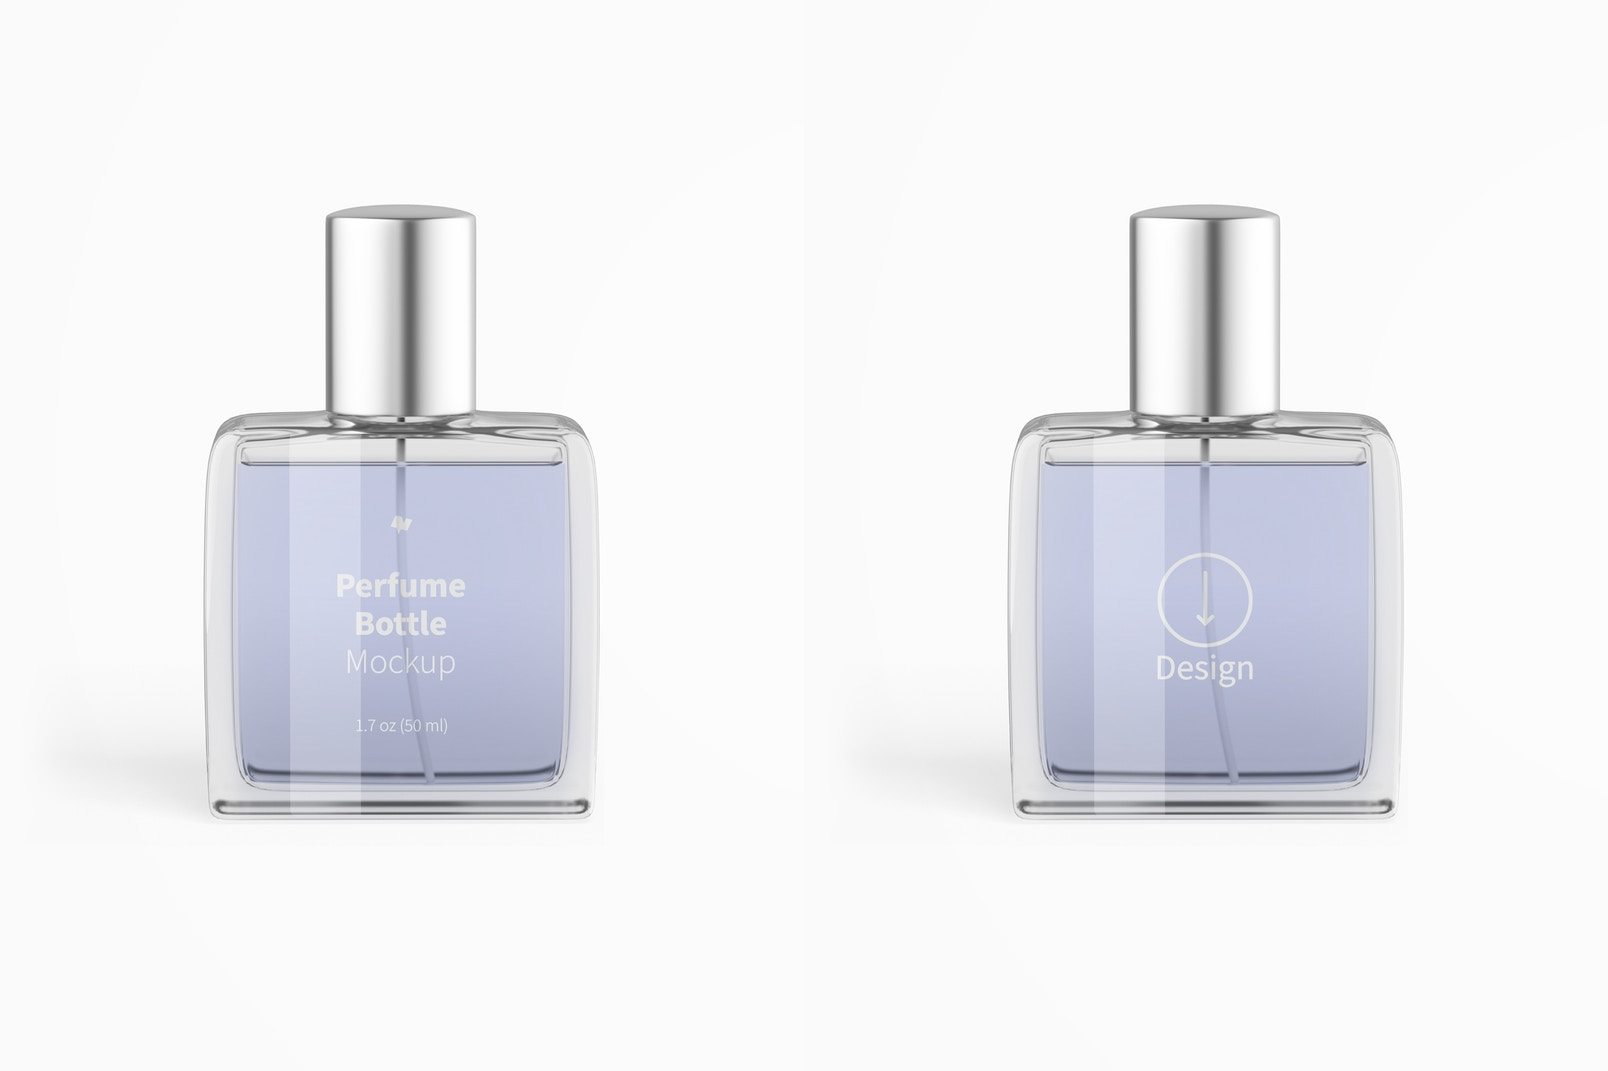 Perfume Bottle Mockup, Front View